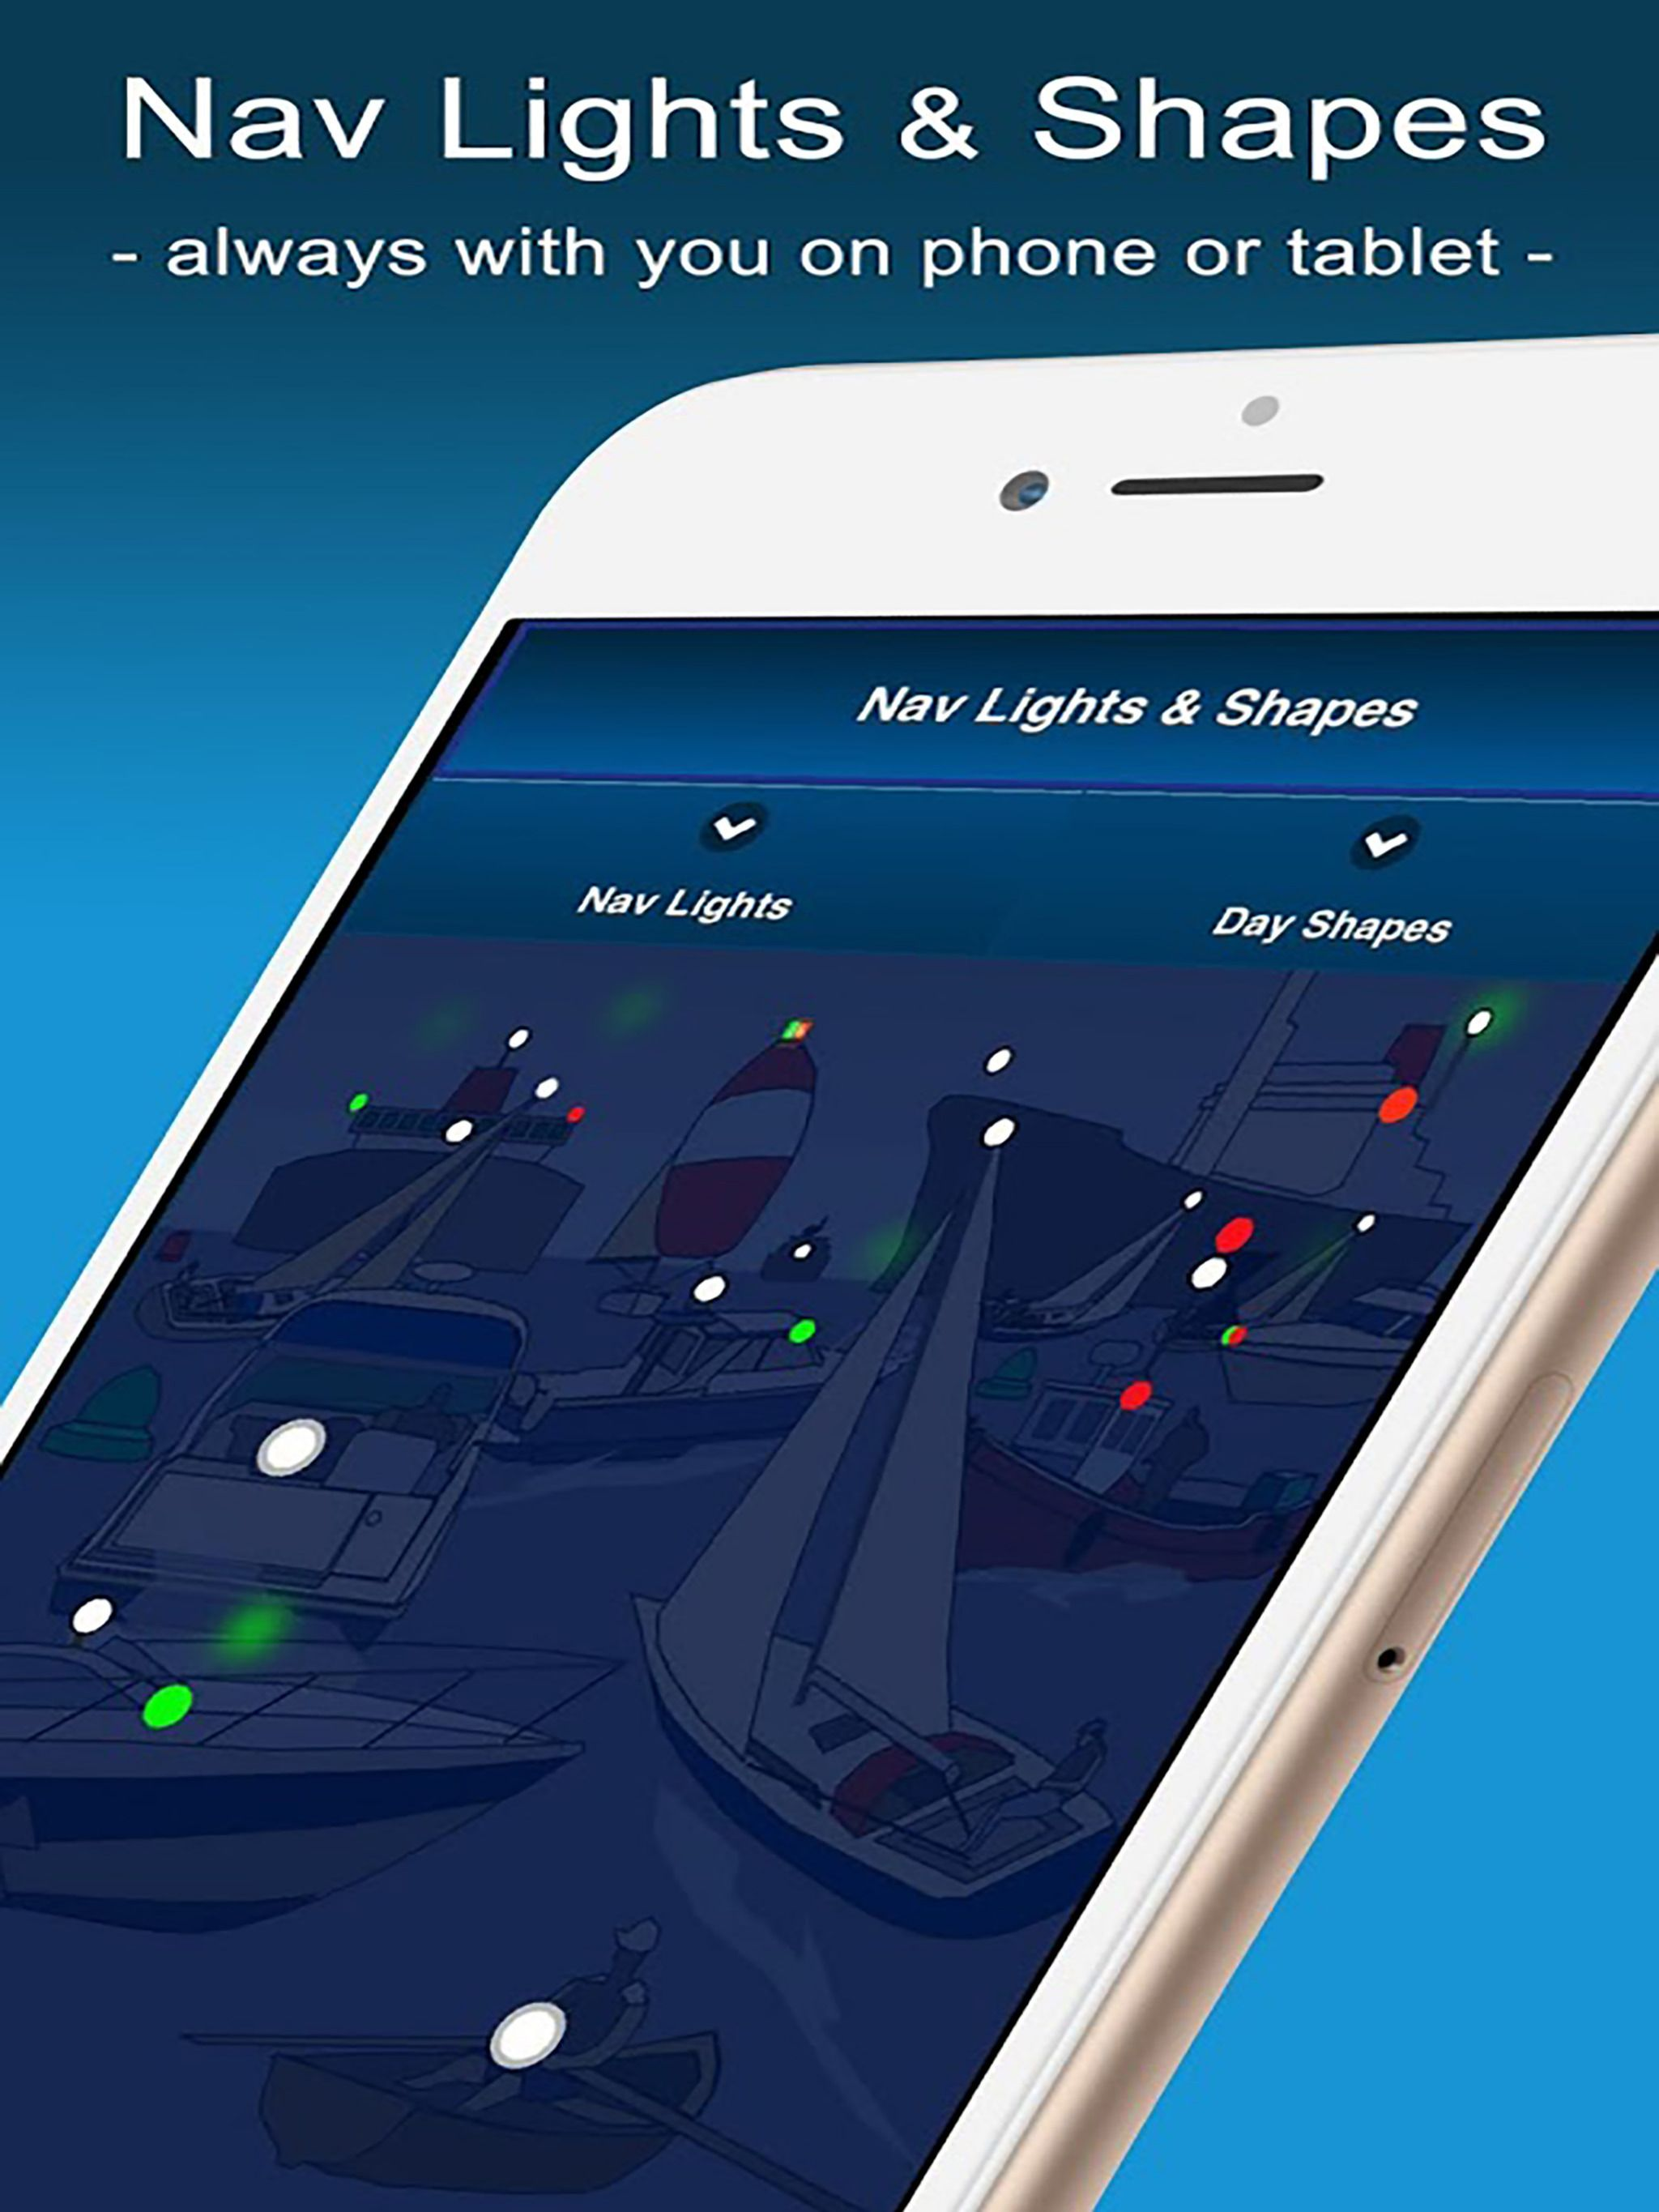 Nav Lights & Shapes app new and updated! Power boats